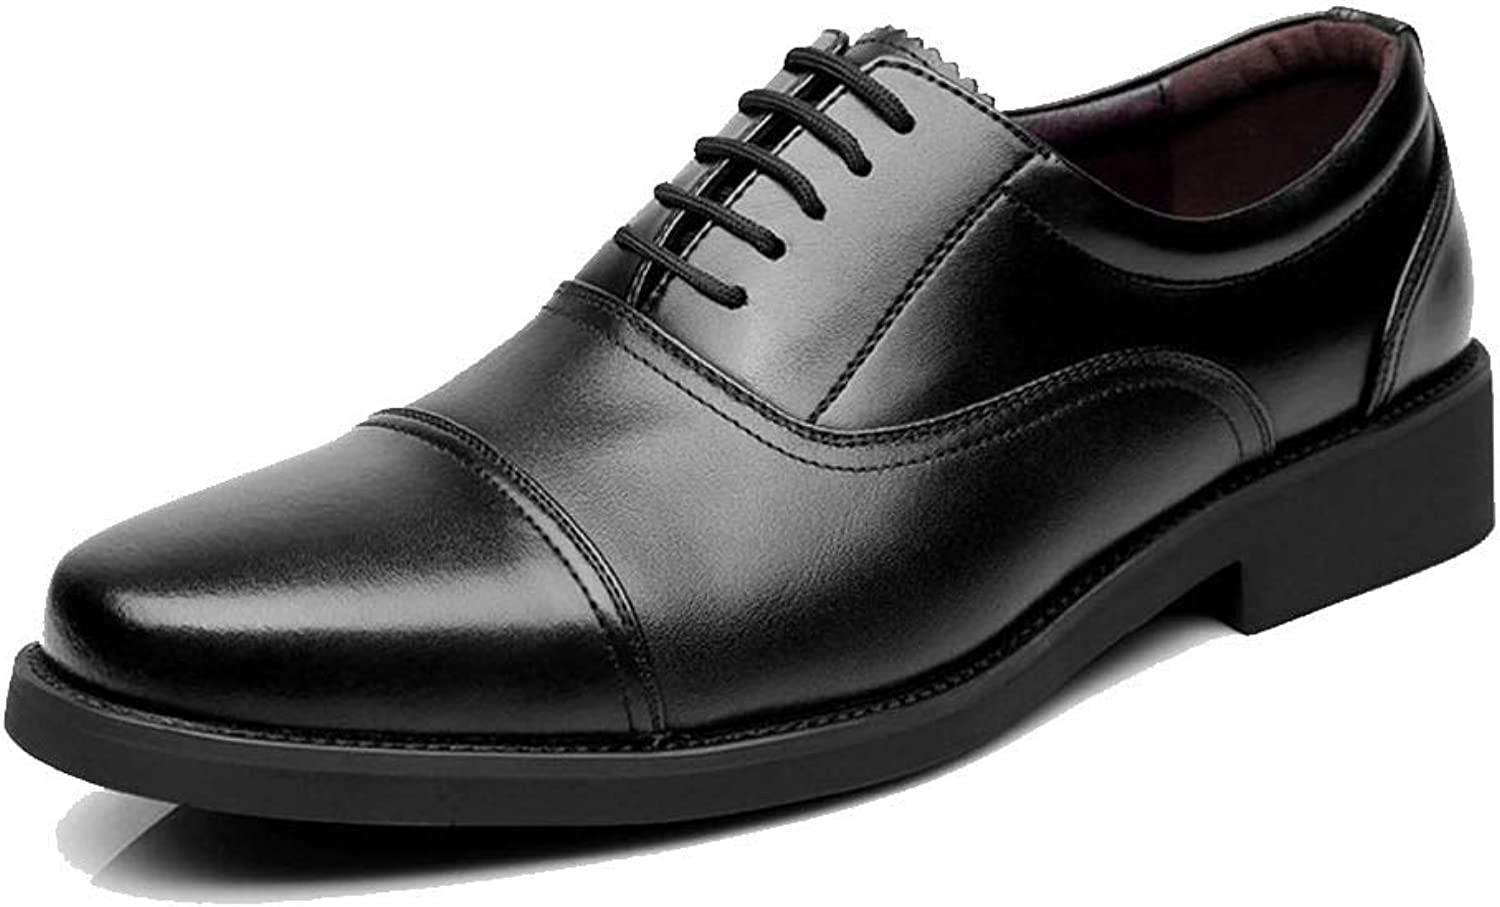 Jiang-ZX Men's shoes,Business Casual shoes Tooling shoes Tide shoes